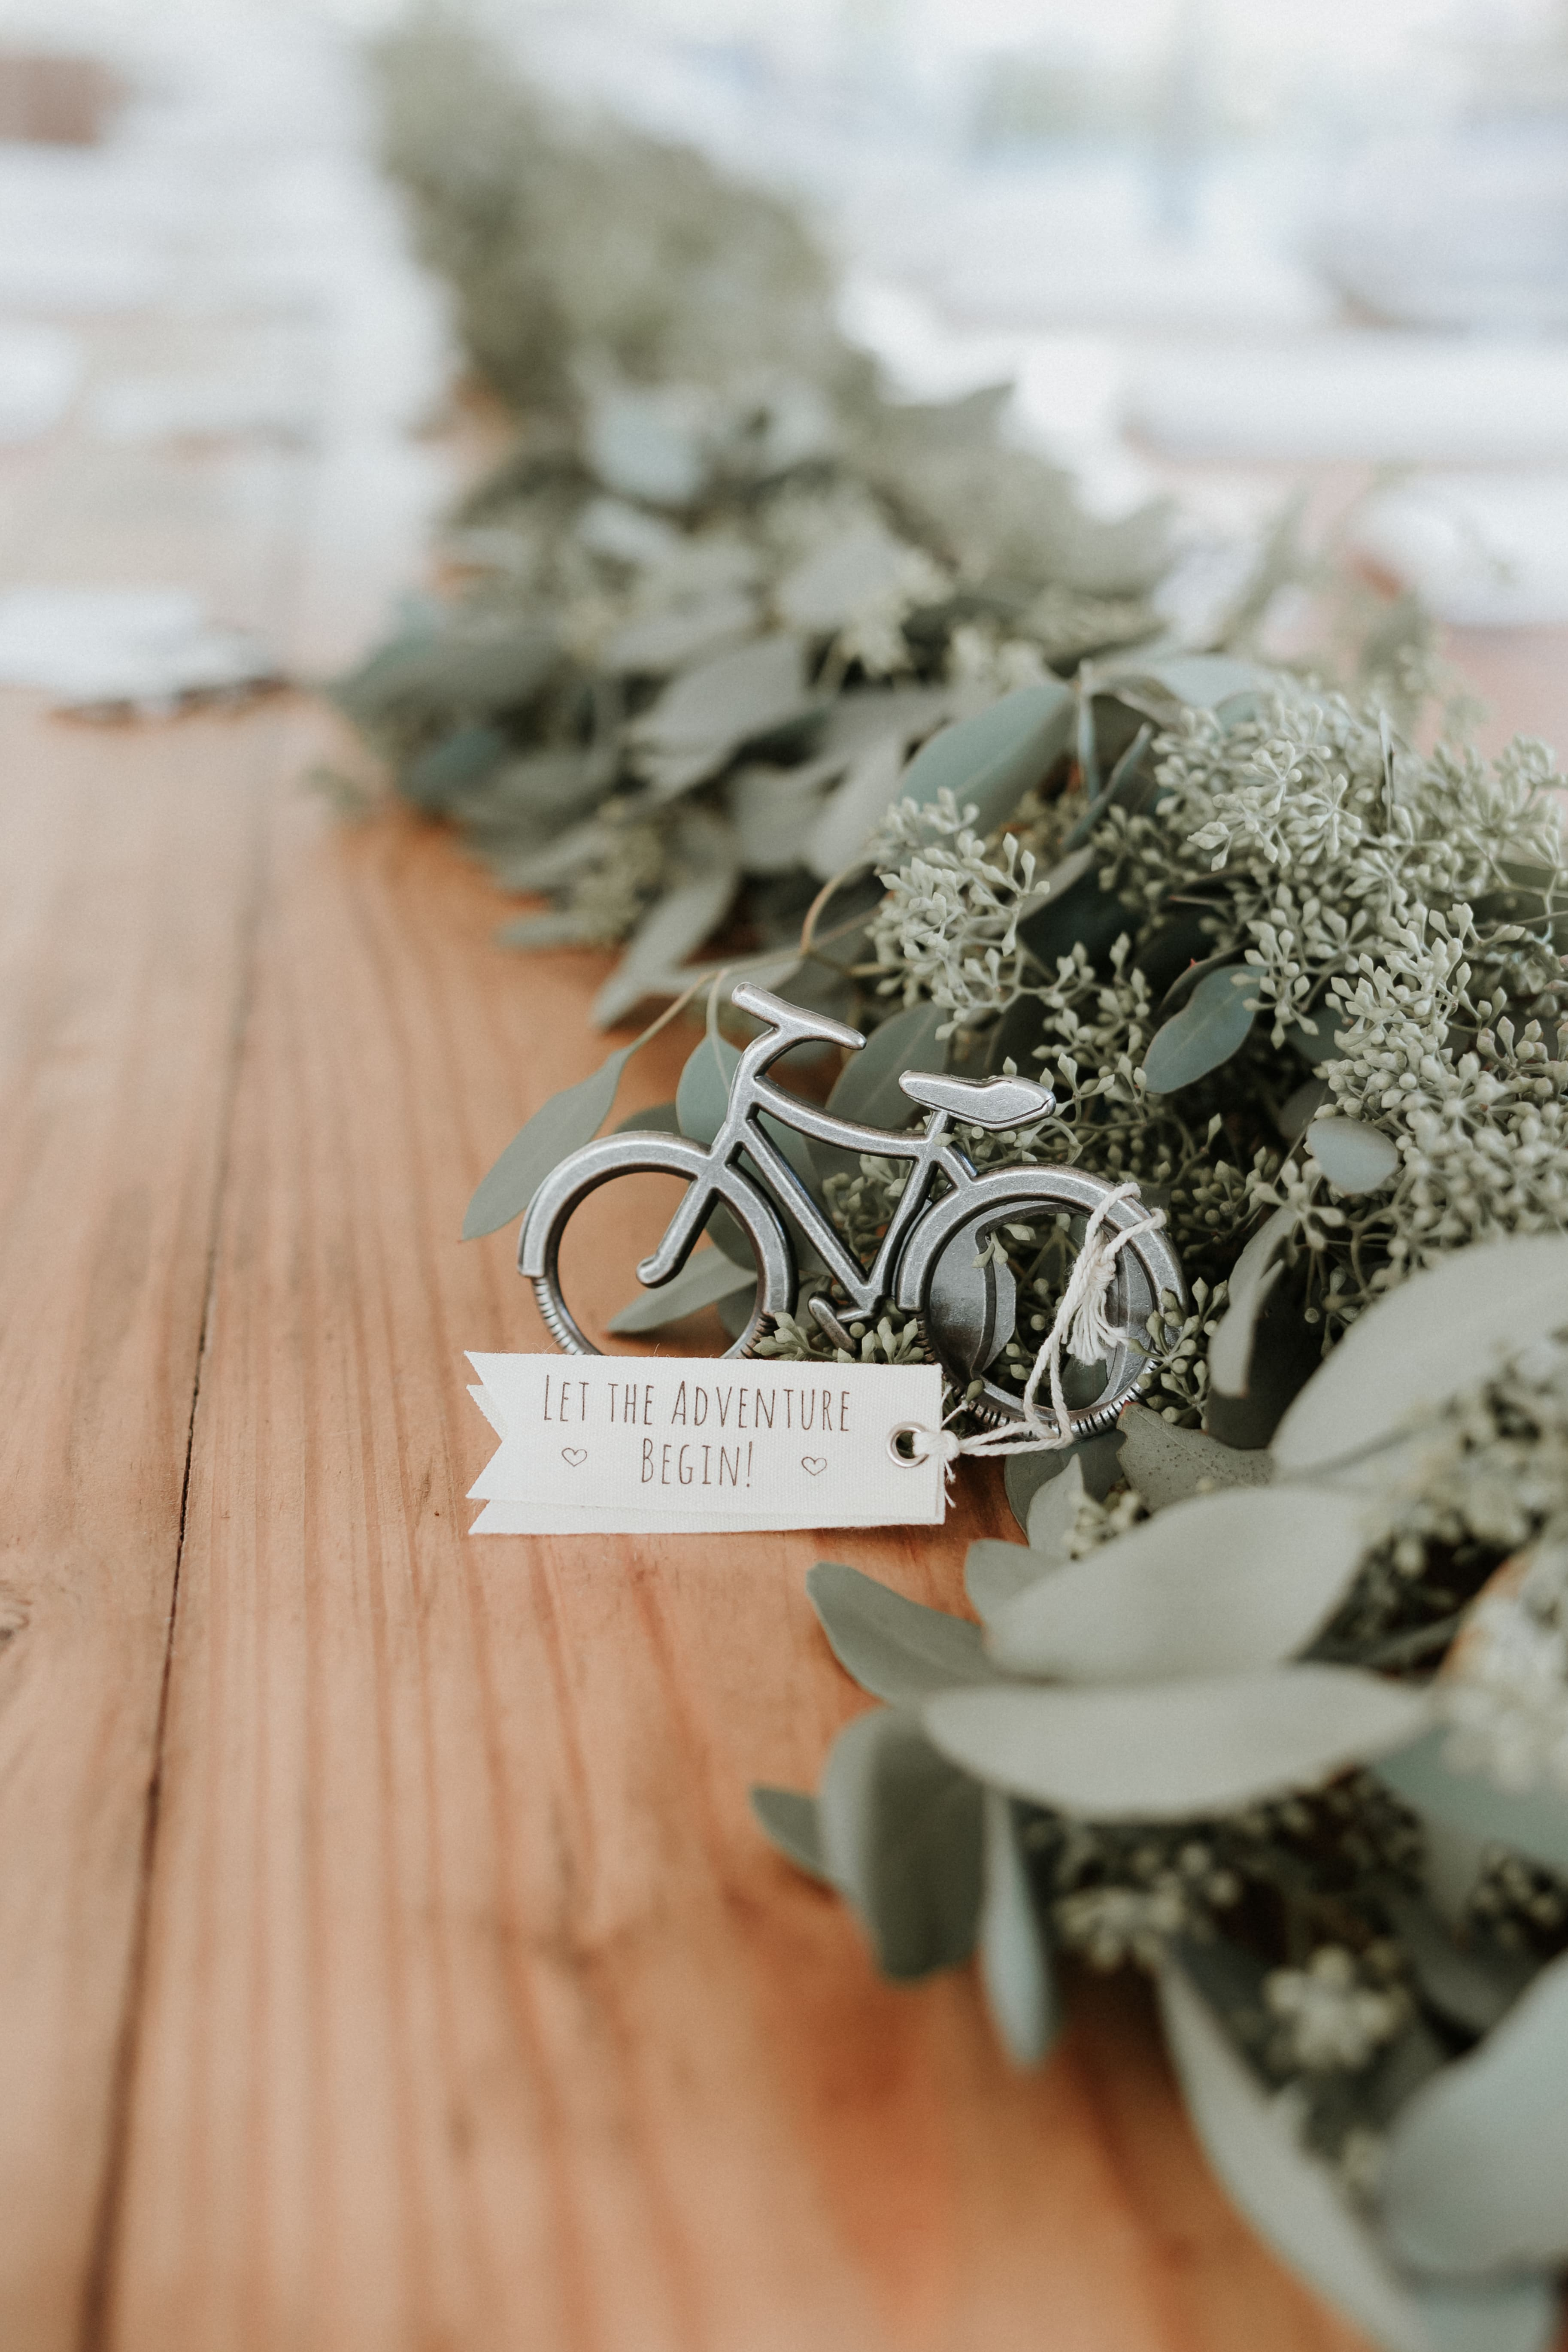 Greenery garland and fun bicycle bottle opener favor set the scene for a relaxed evening at The Ivy Place captured by Shutter Owl Photography